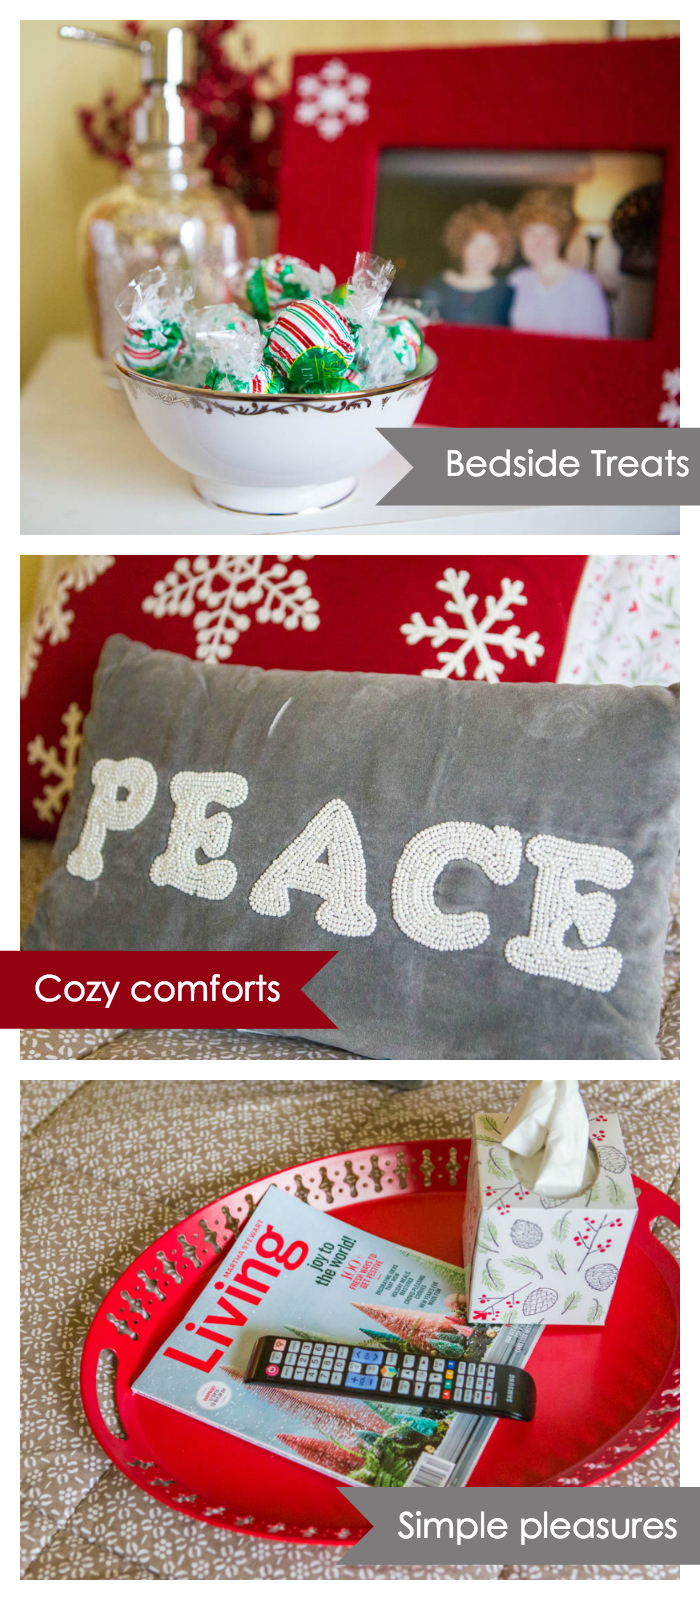 20 personal and festive guest room ideas for the holidays